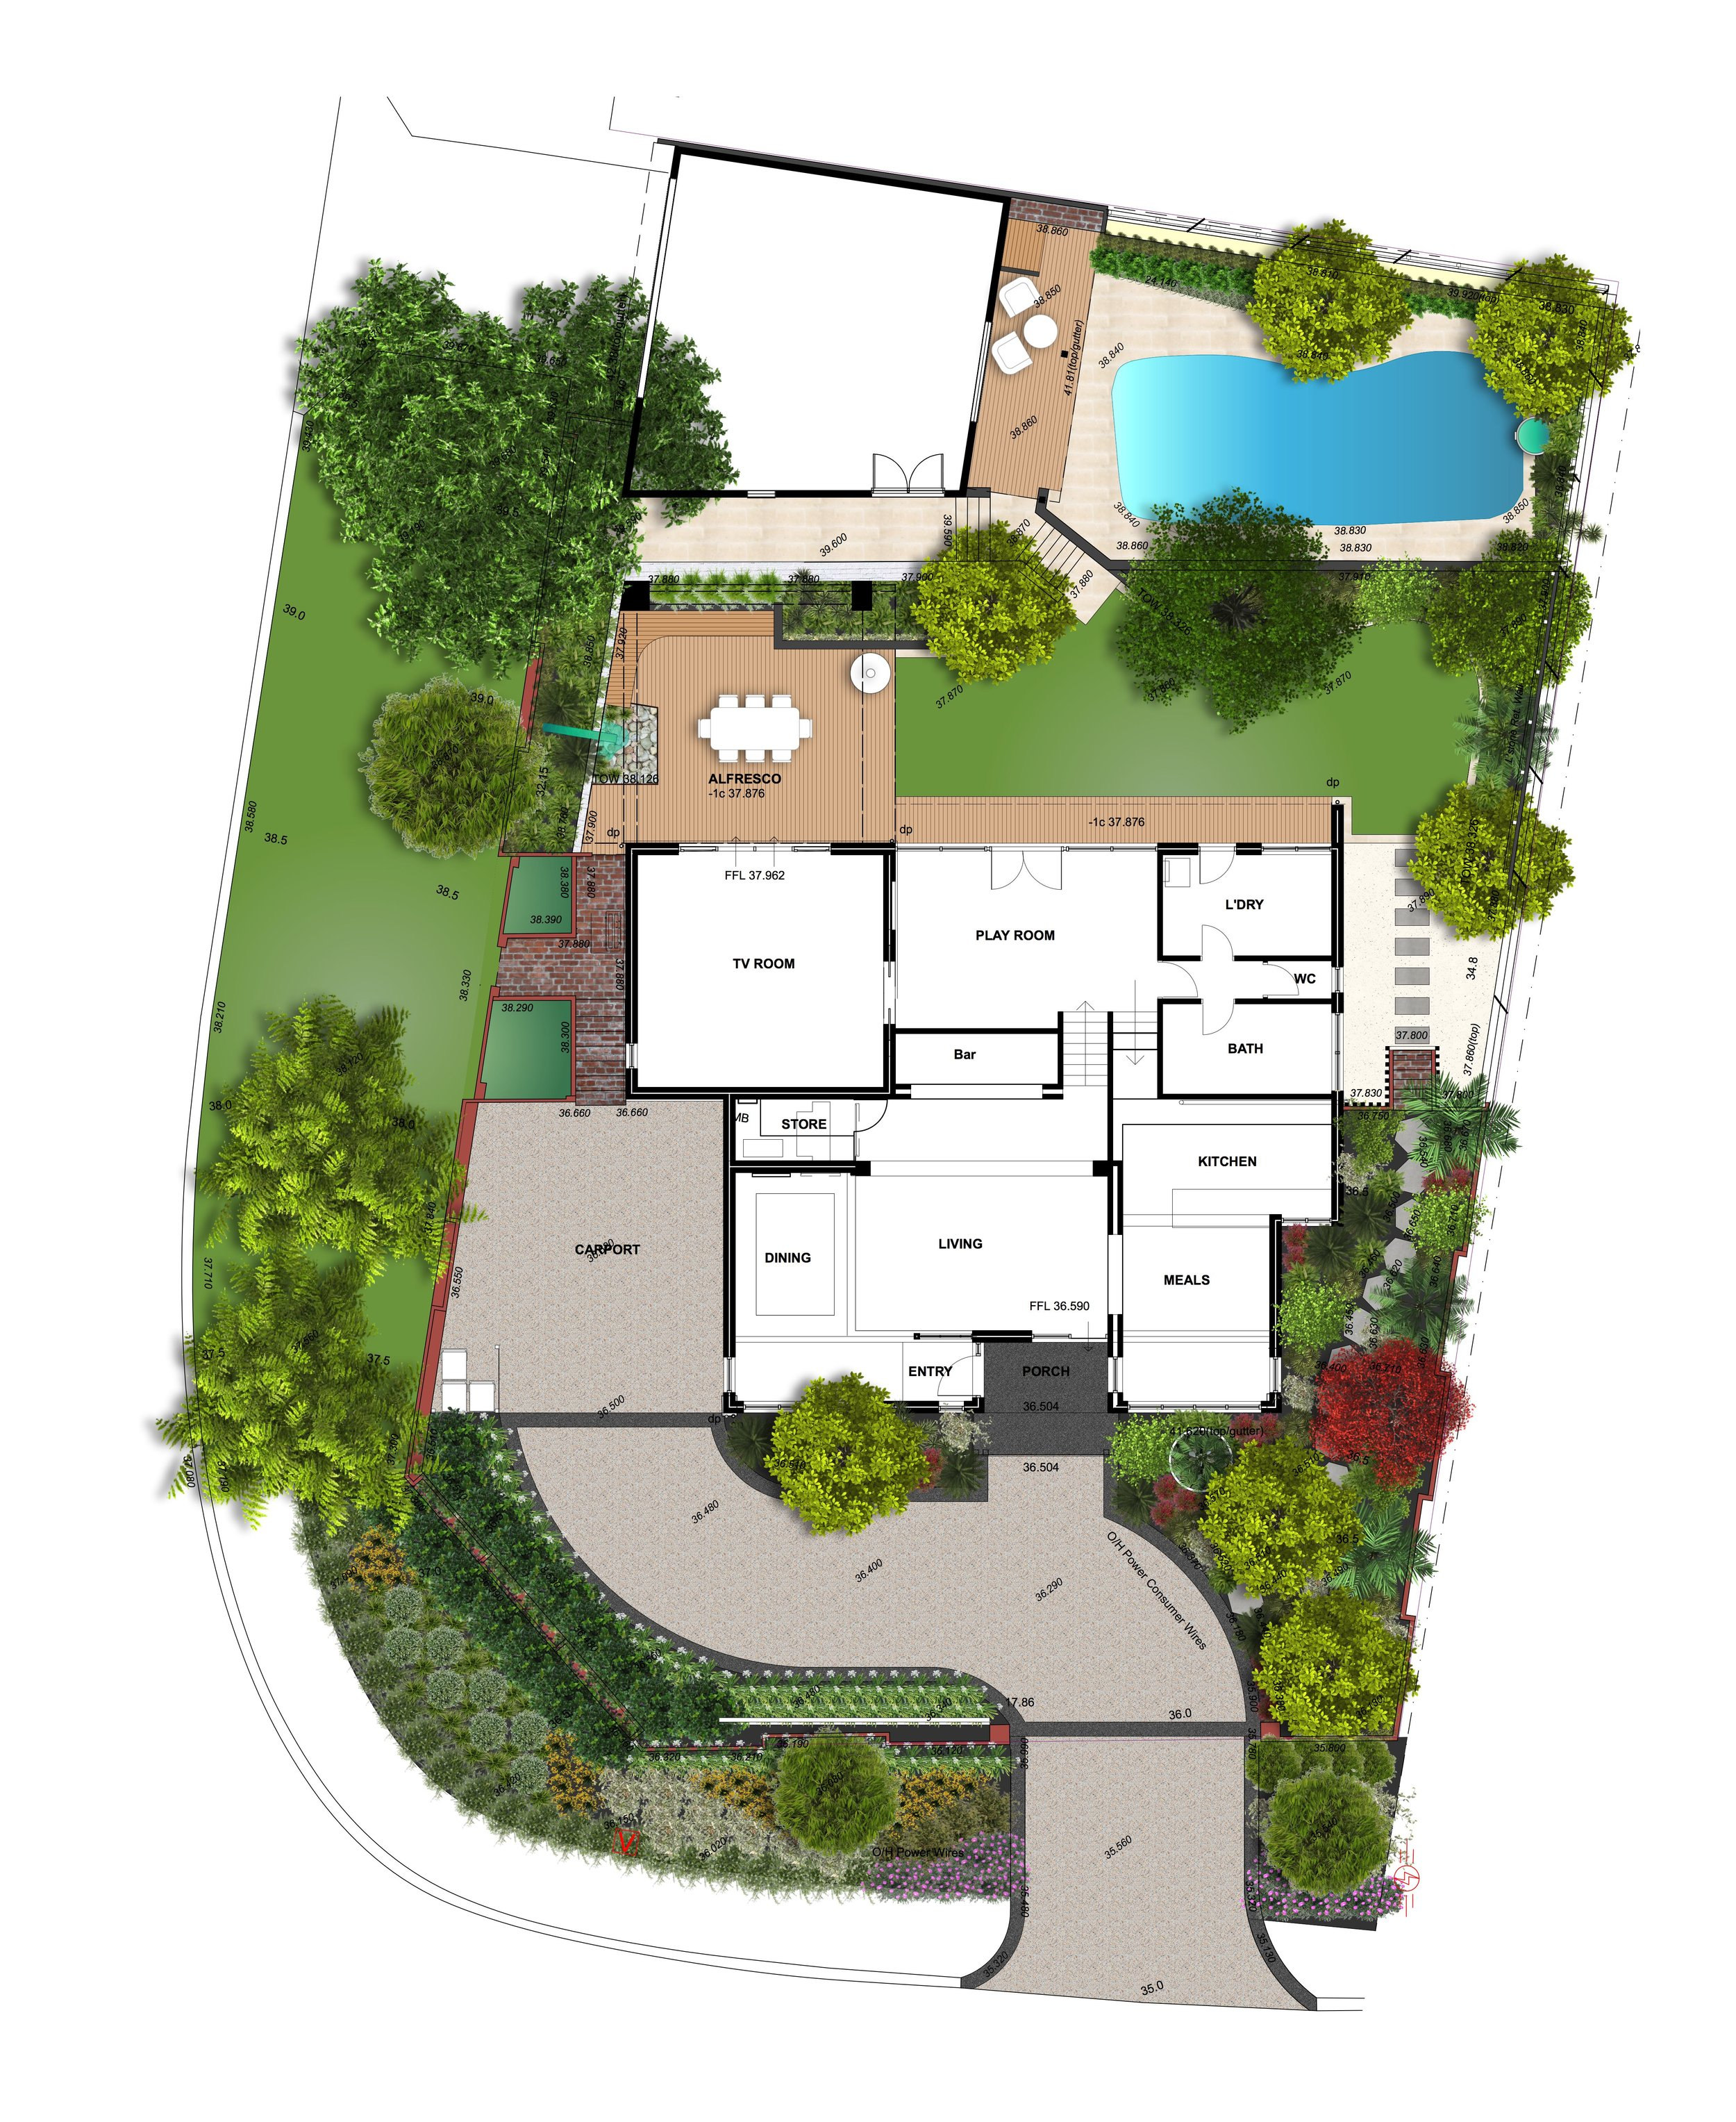 Water-wise verge plantings, a curved driveway, an inviting entry garden, a new alfresco with water feature, daybed, raised planters and lush poolside plantings complete this garden makeover.